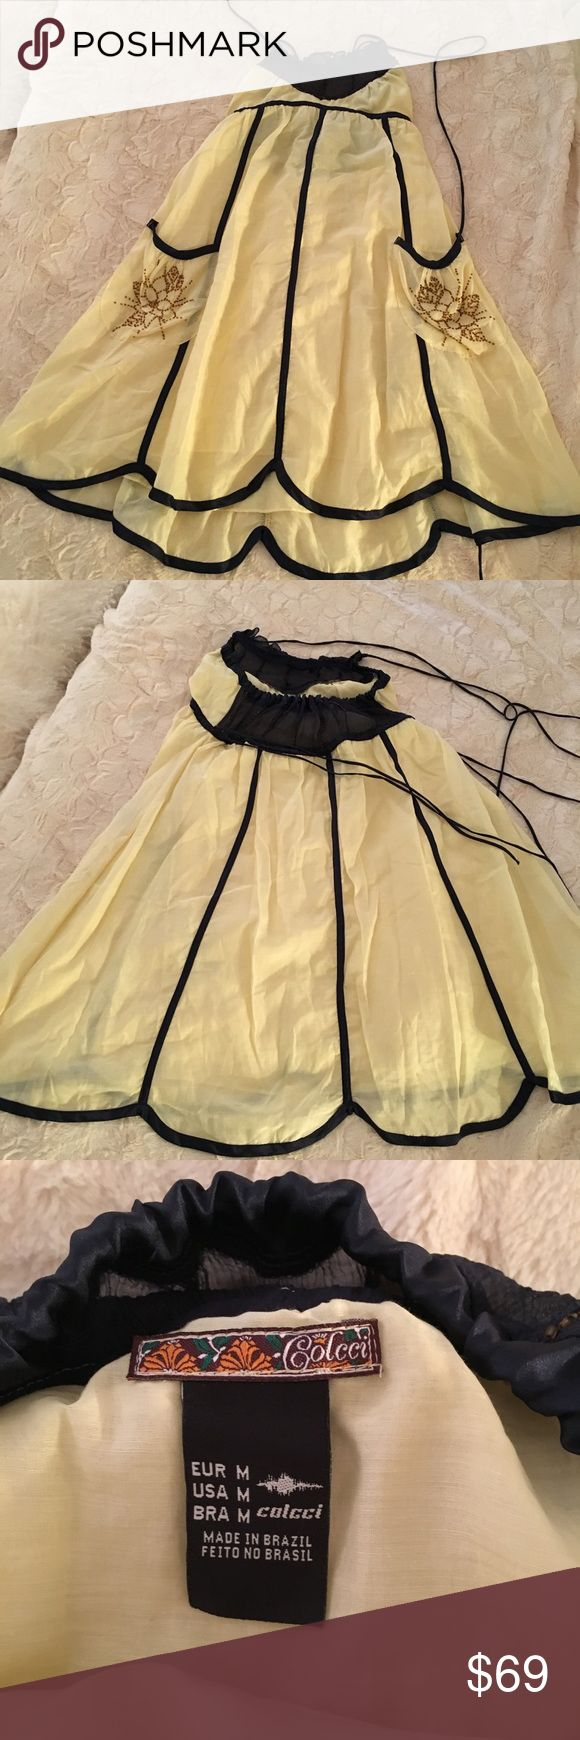 🌼 COLCCI Yellow and Blue Sundress Dress with straps which tie around neck. Very cute fun sun dress. Sheer fabric Colcci Dresses Mini